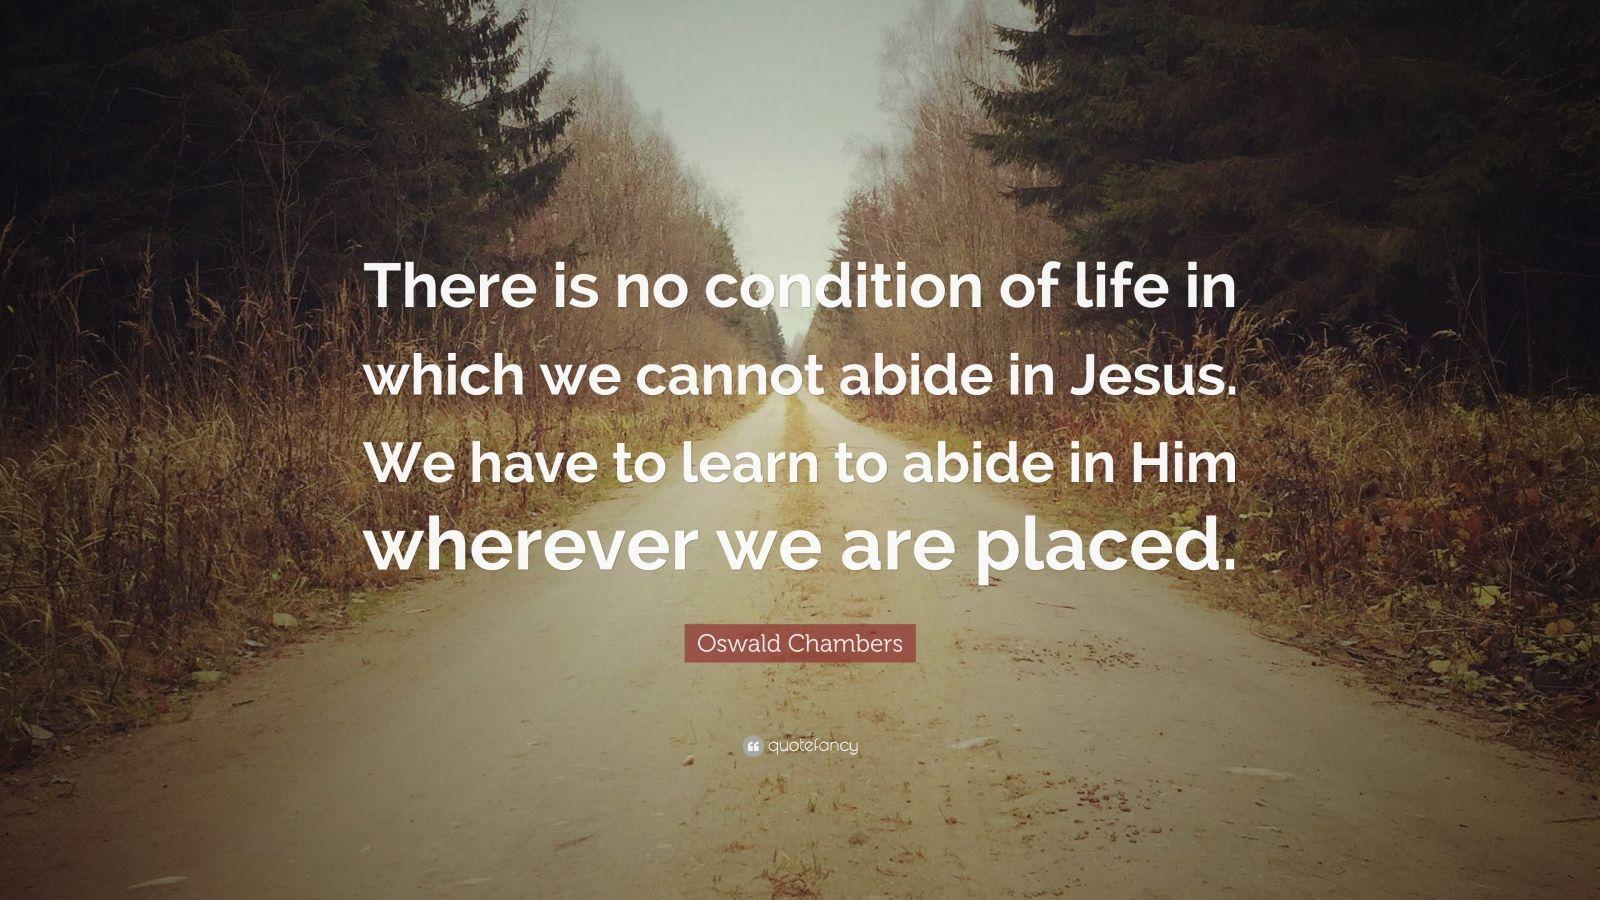 """Oswald Chambers Quote: """"There is no condition of life in which we cannot abide in Jesus. We have to learn to abide in Him wherever we are placed."""""""